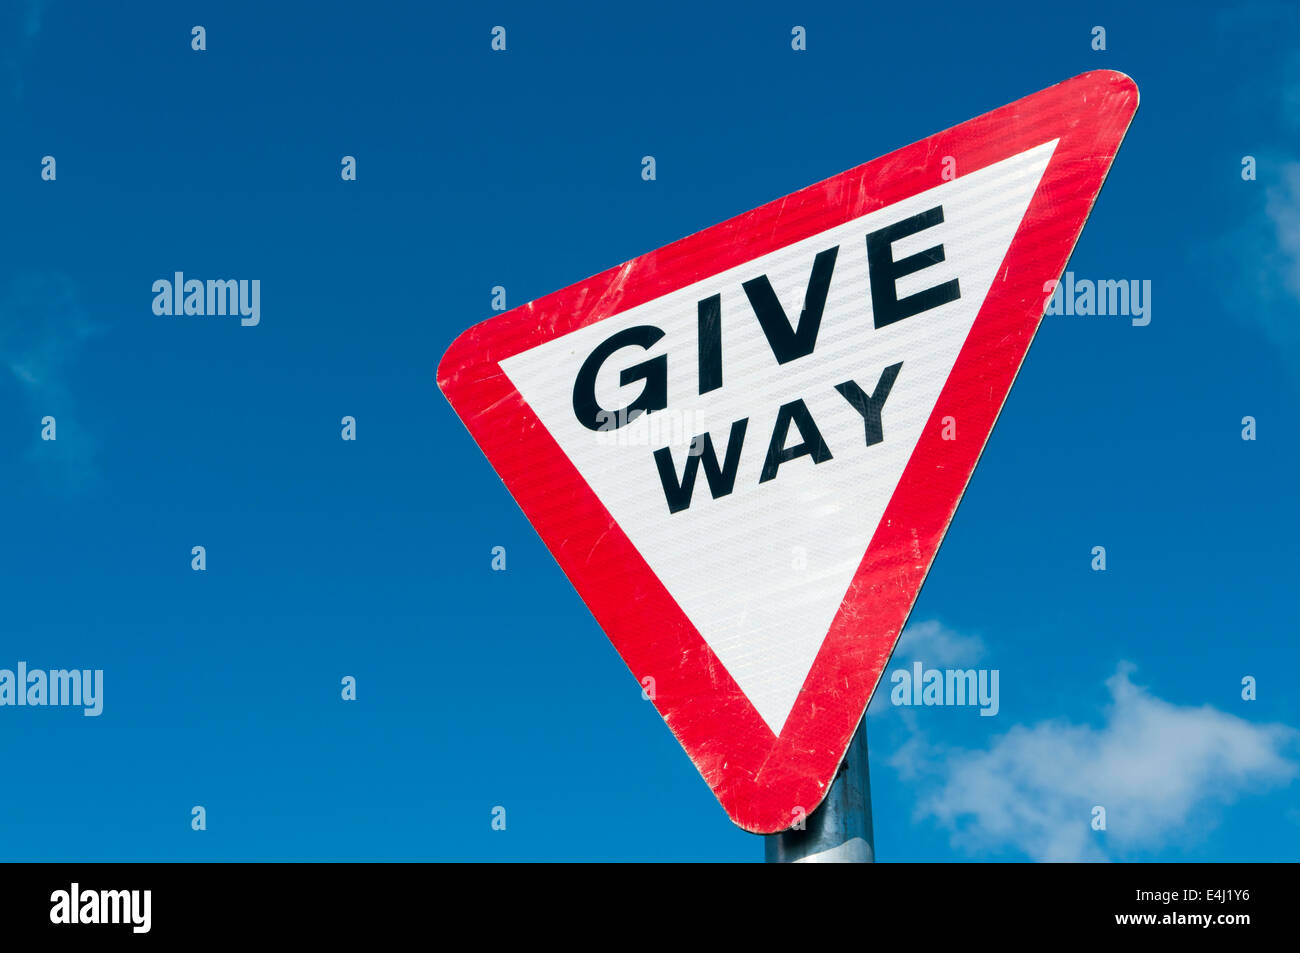 Give Way sign against a blue sky Stock Photo